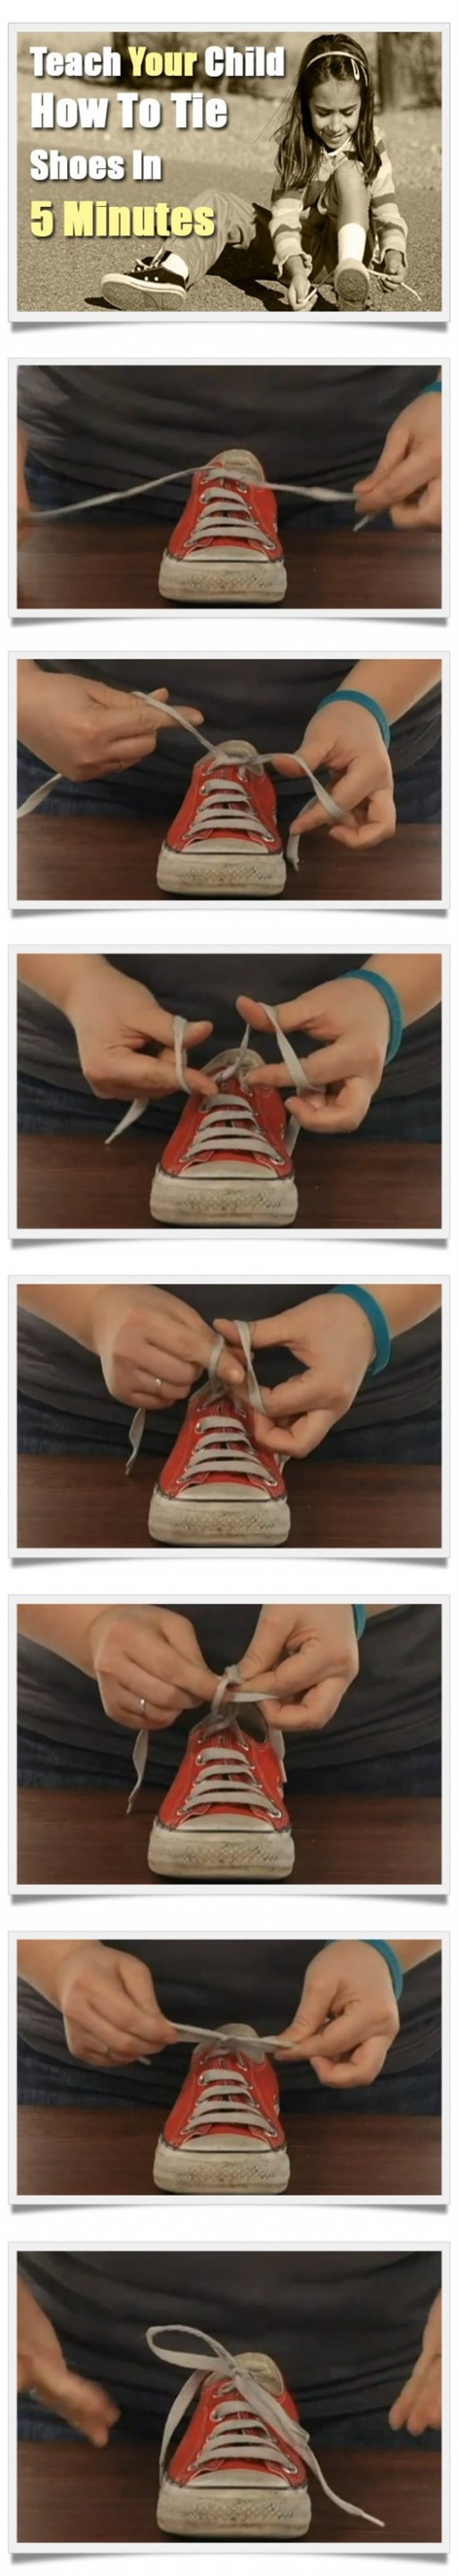 How To Teach Your Child To Tie Shoes In 5 Minutes 1